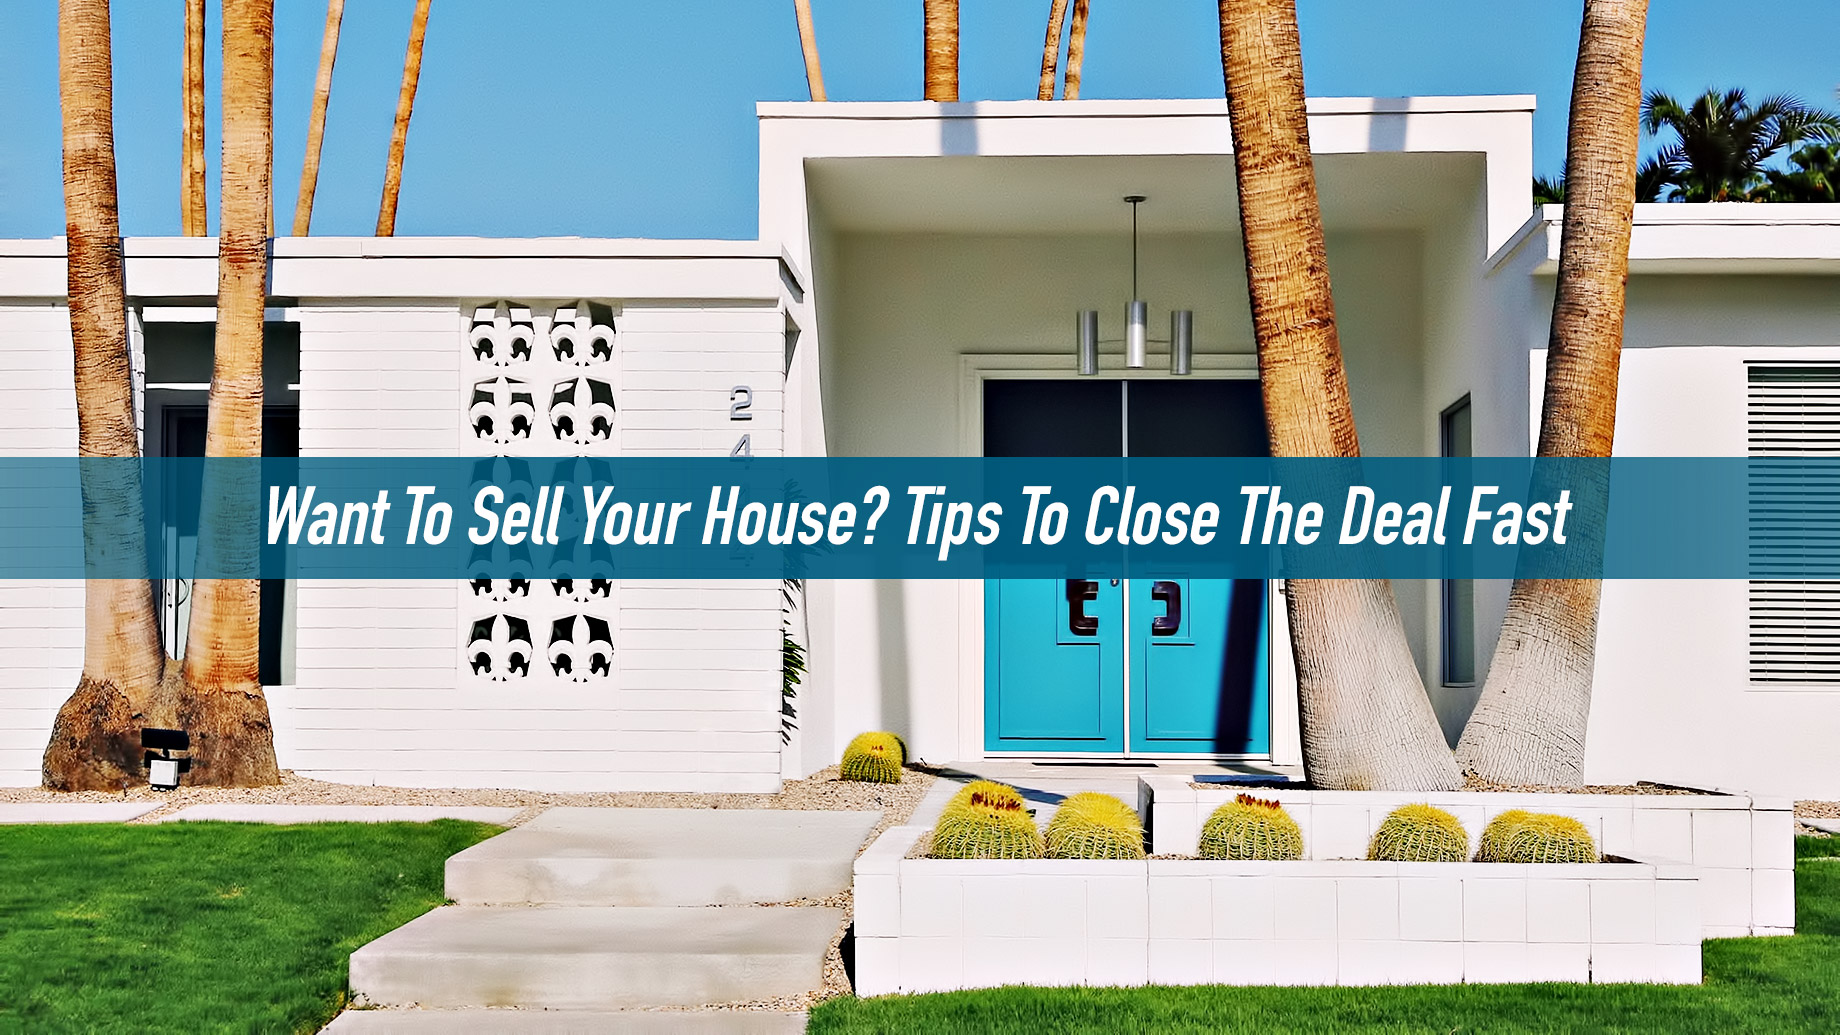 Want To Sell Your House? Tips To Close The Deal Fast